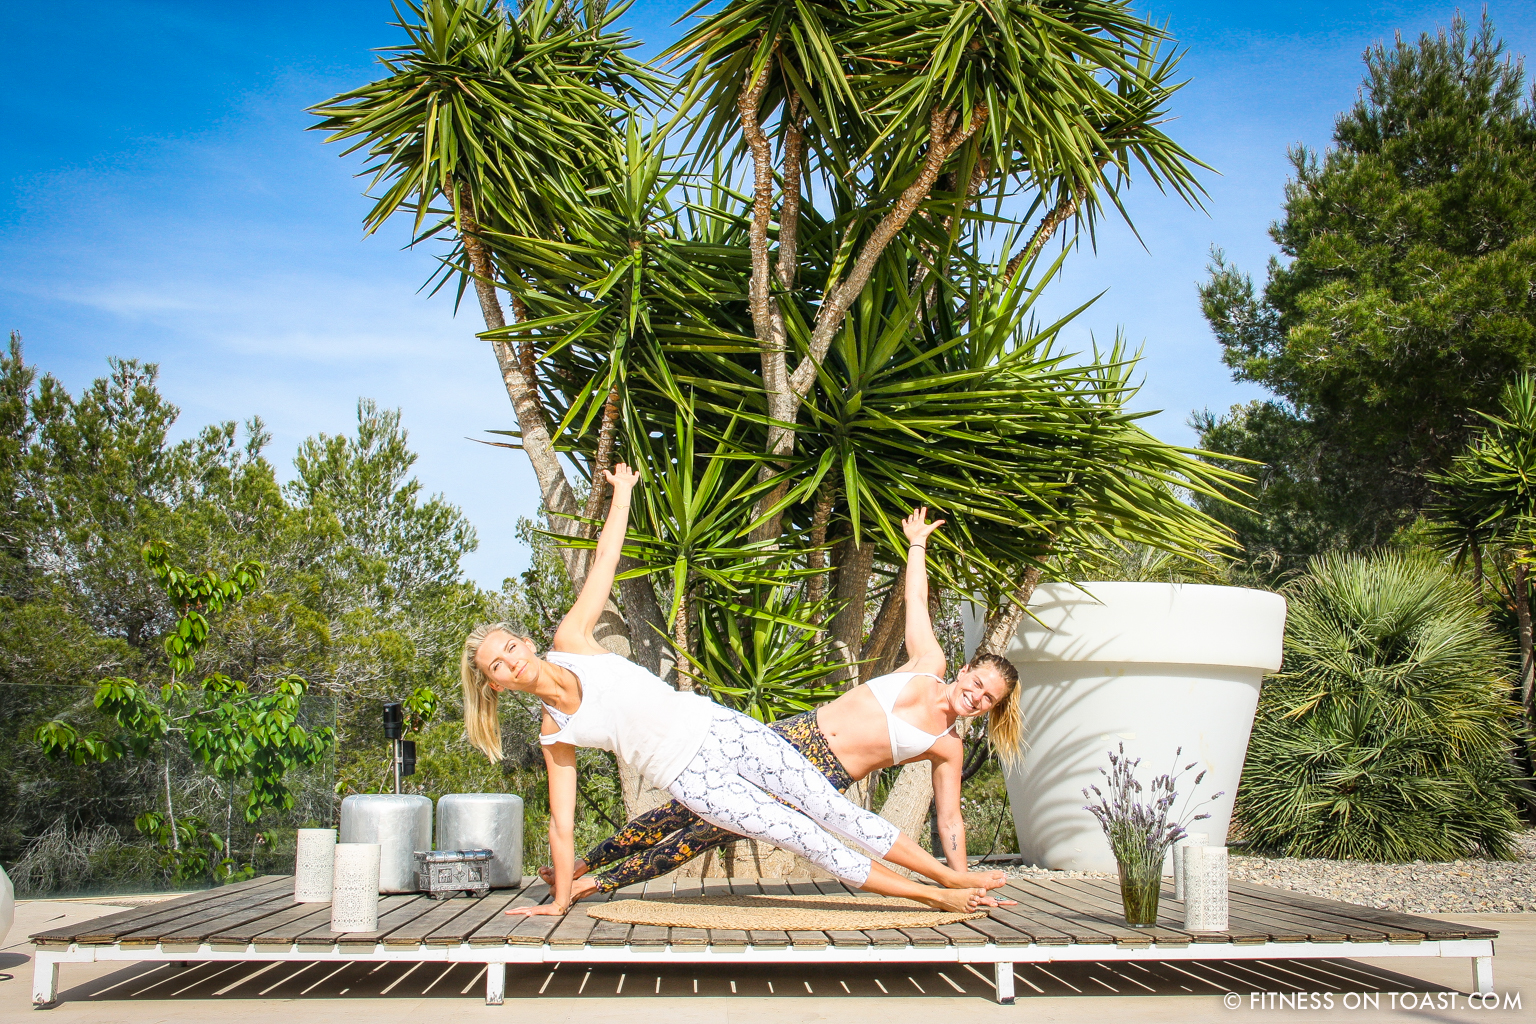 Fitness On Toast Faya Blog Girl Healthy Training Yoga Chakra Daisy Jewellery Routine Sun Holiday Travel Luxury Ibiza Villa Destination Spain Balearic Bootcamp-9